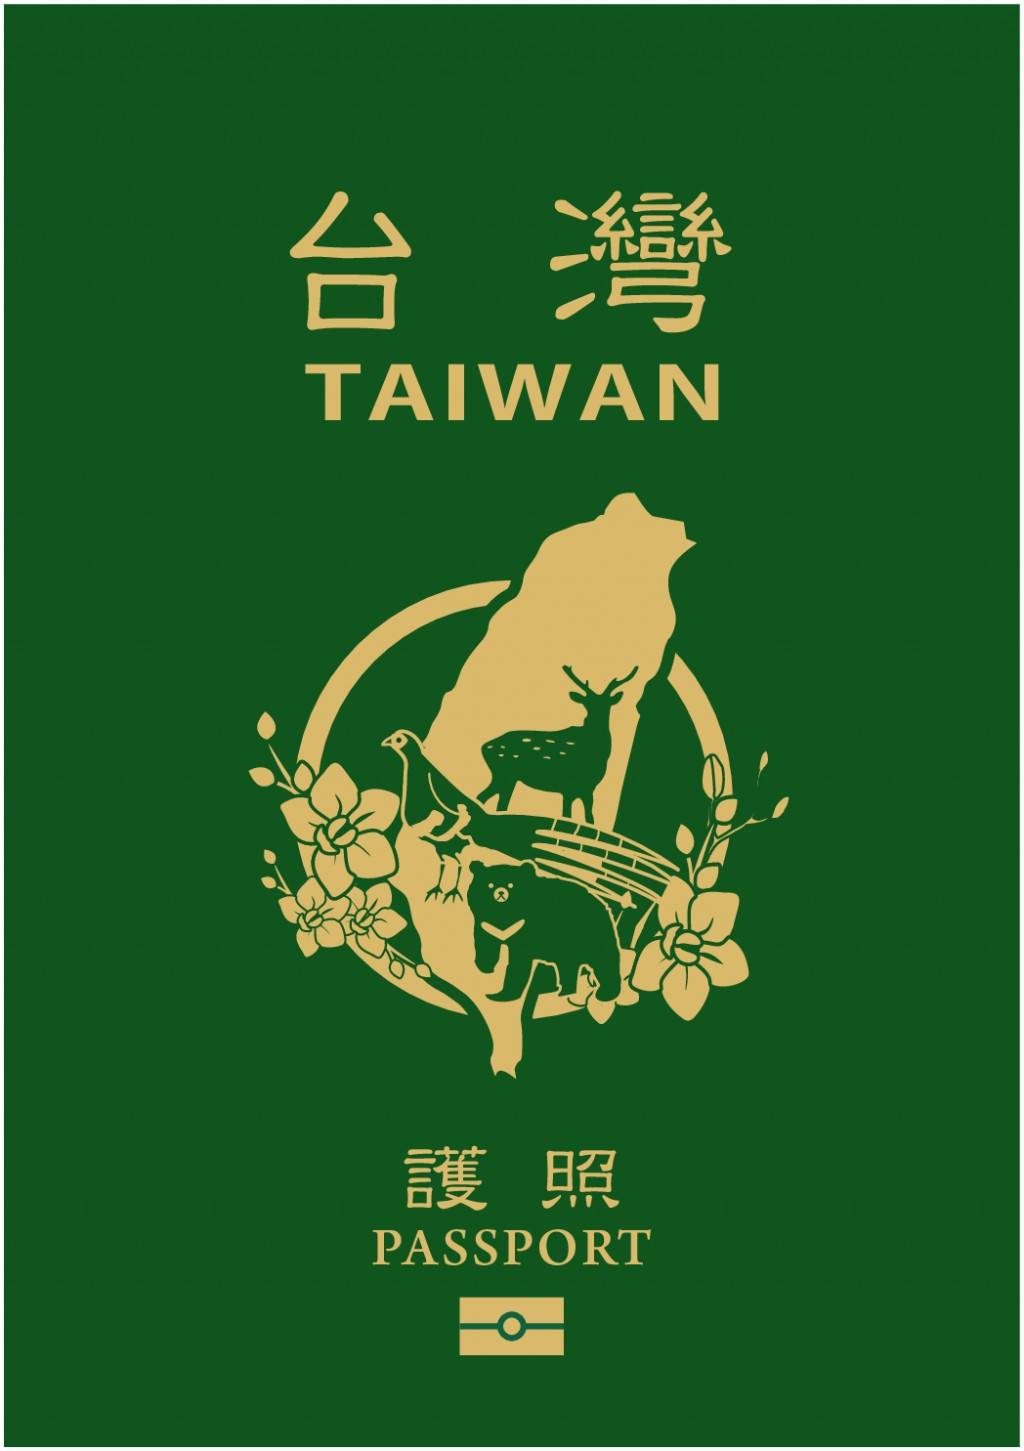 New Taiwan passport design up for public vote